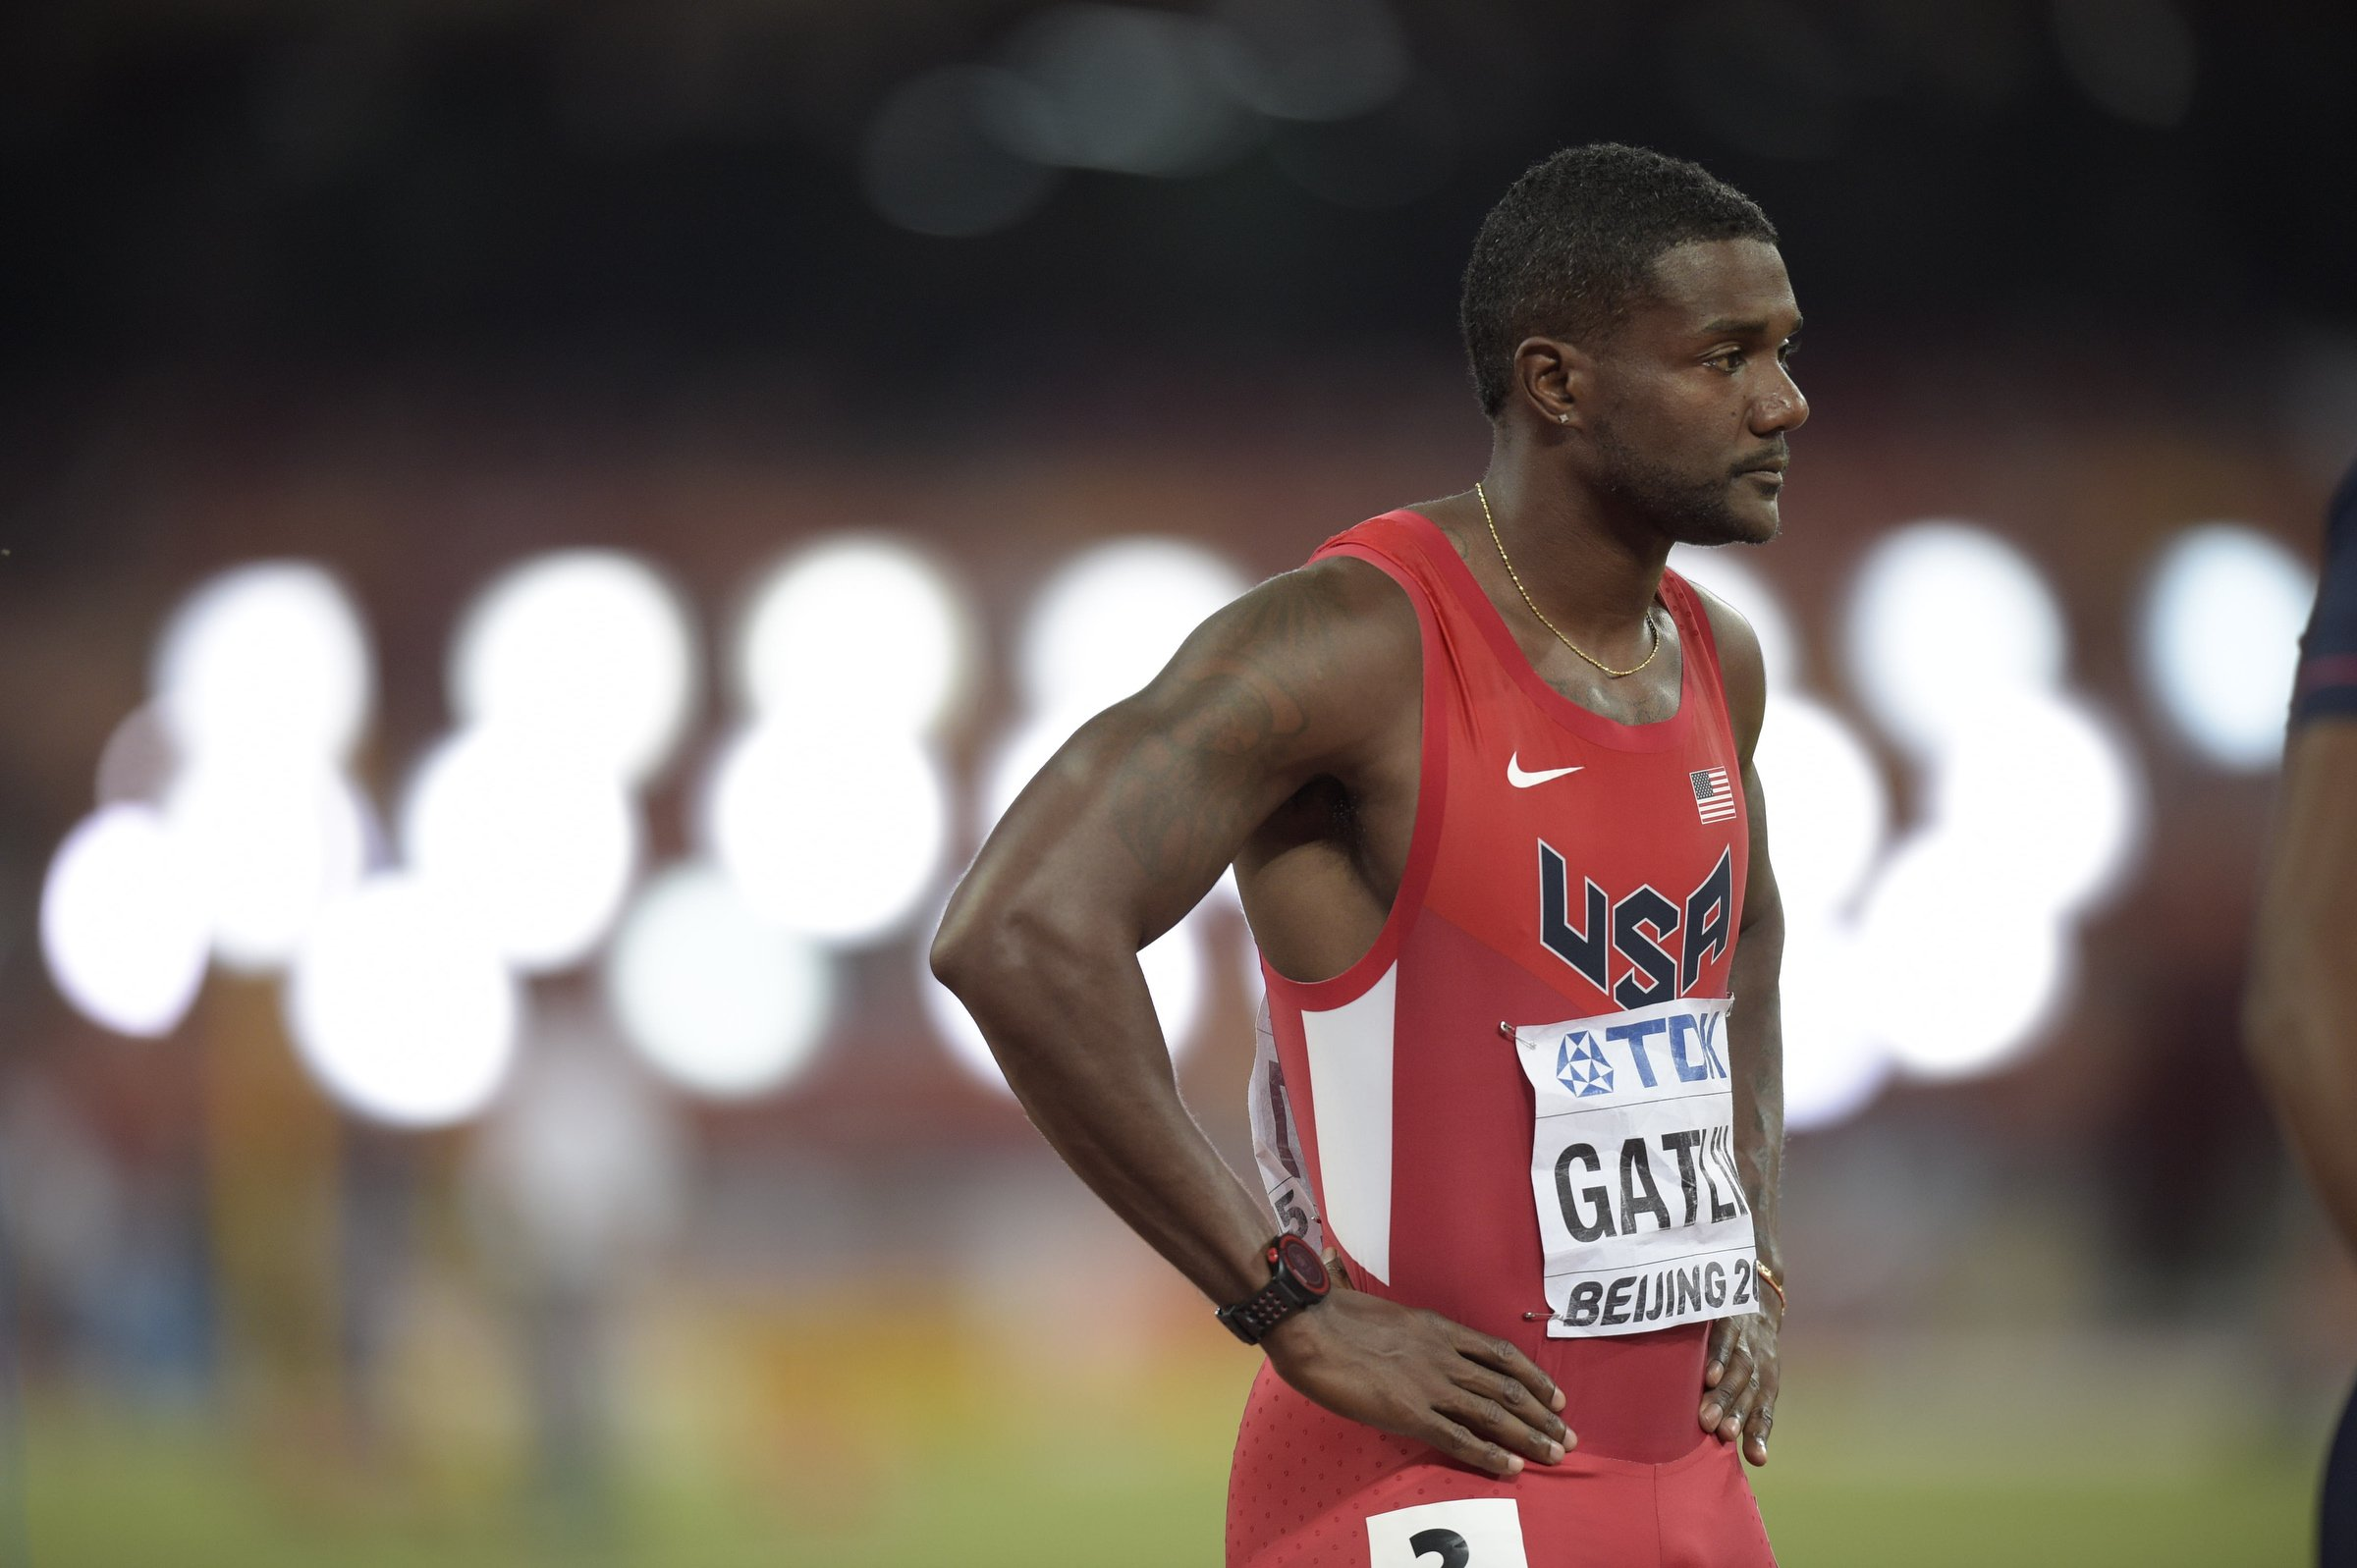 Justin Gatlin (USA) shifts his focus to the 200-meter run after taking silver in the 100-meter final behind Usain Bolt.